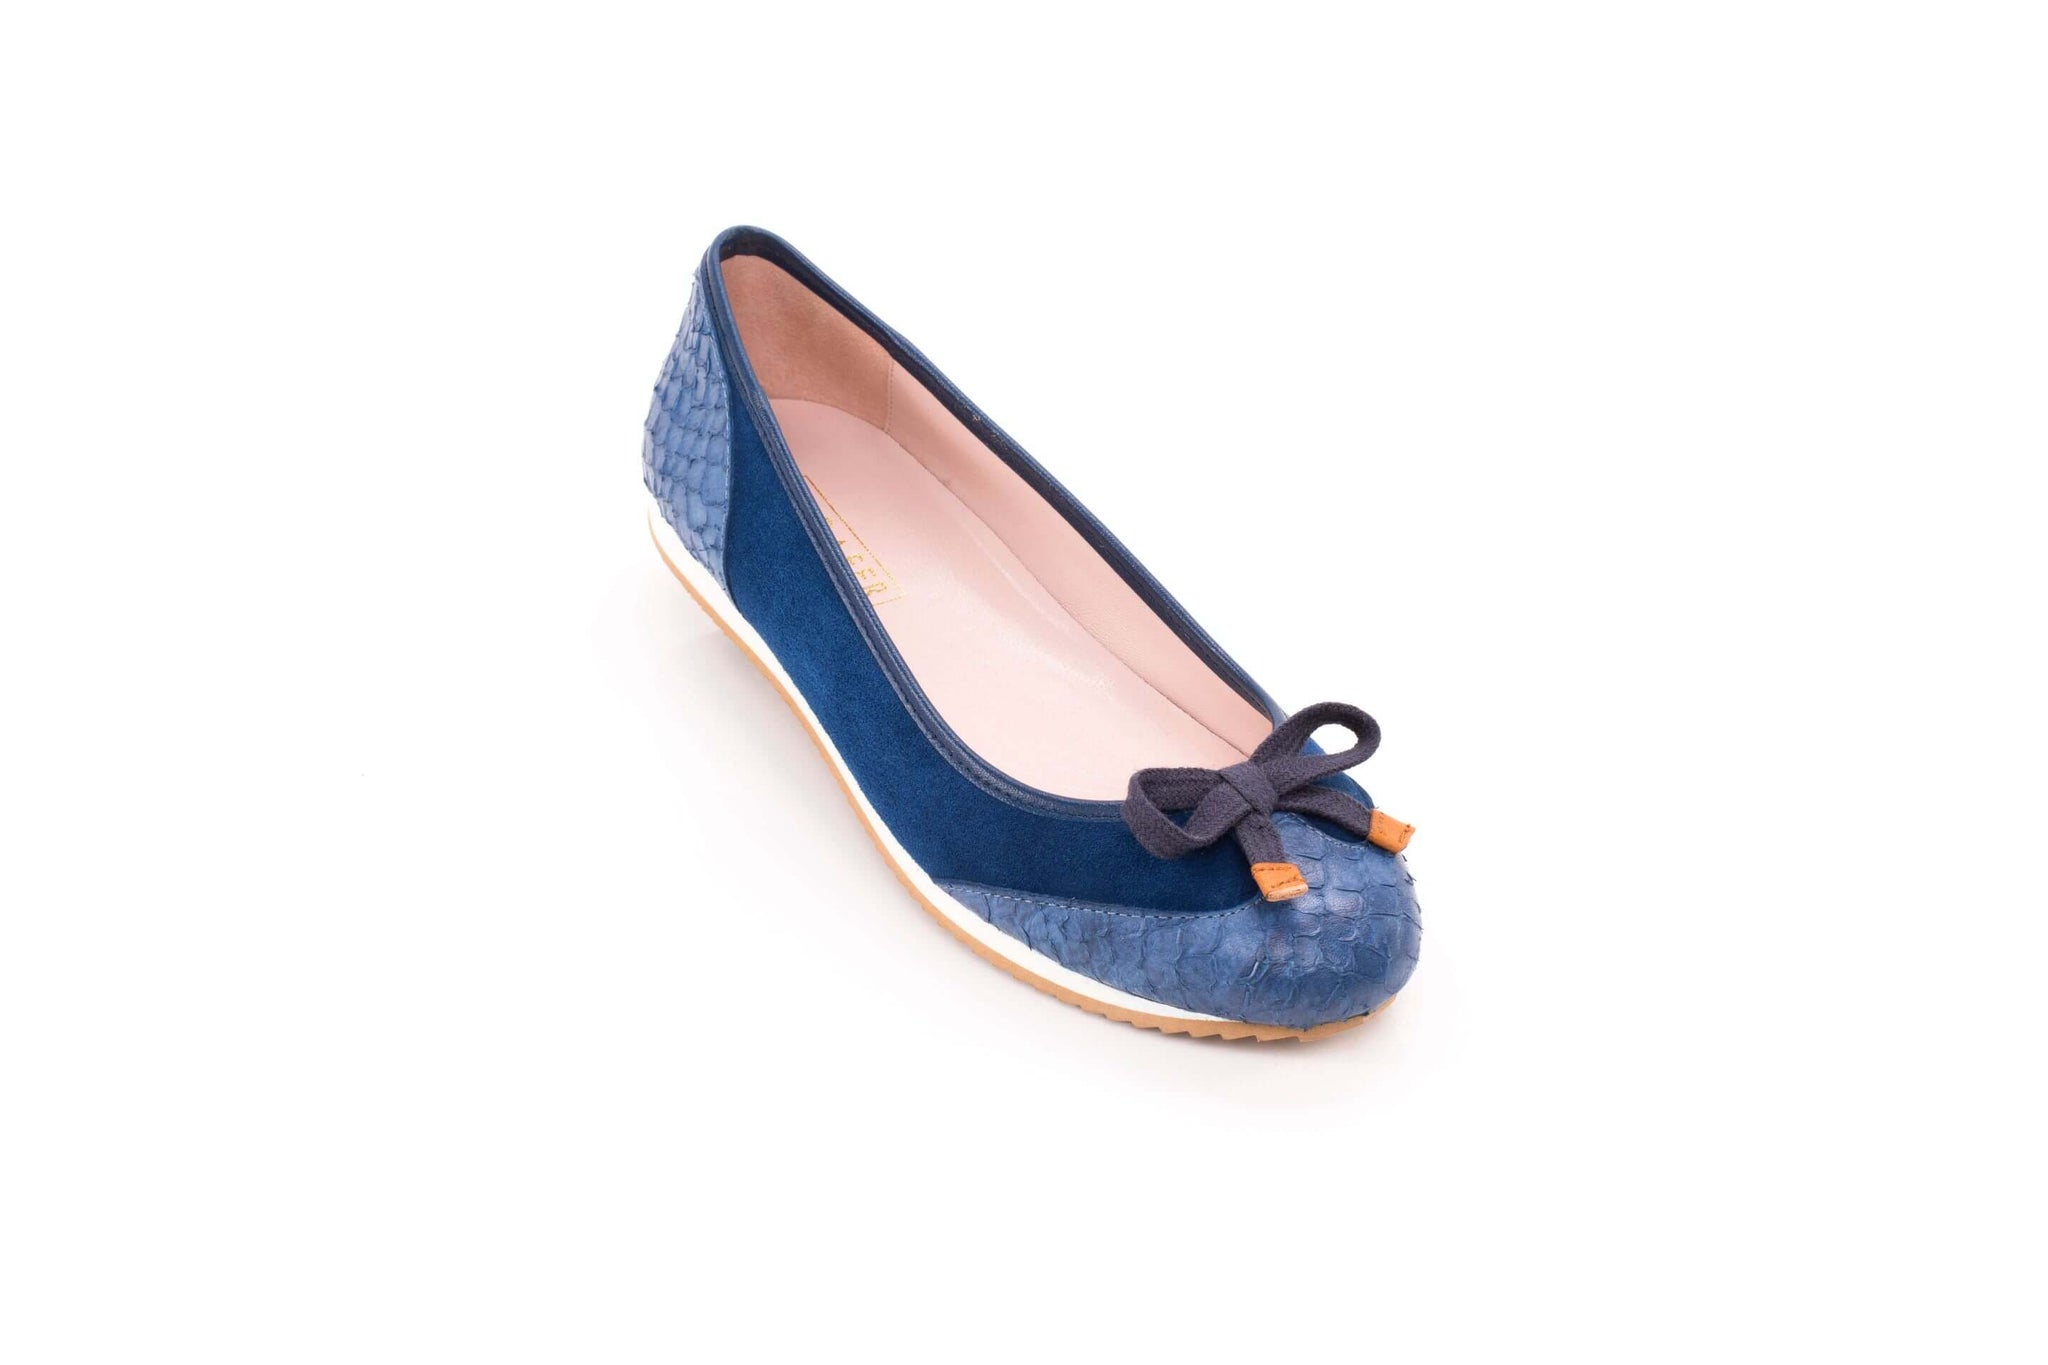 Blue croc sneakerpump by Sloafer - the elegance and simplicity of a ballet pump, the comfort and support of a sneaker.